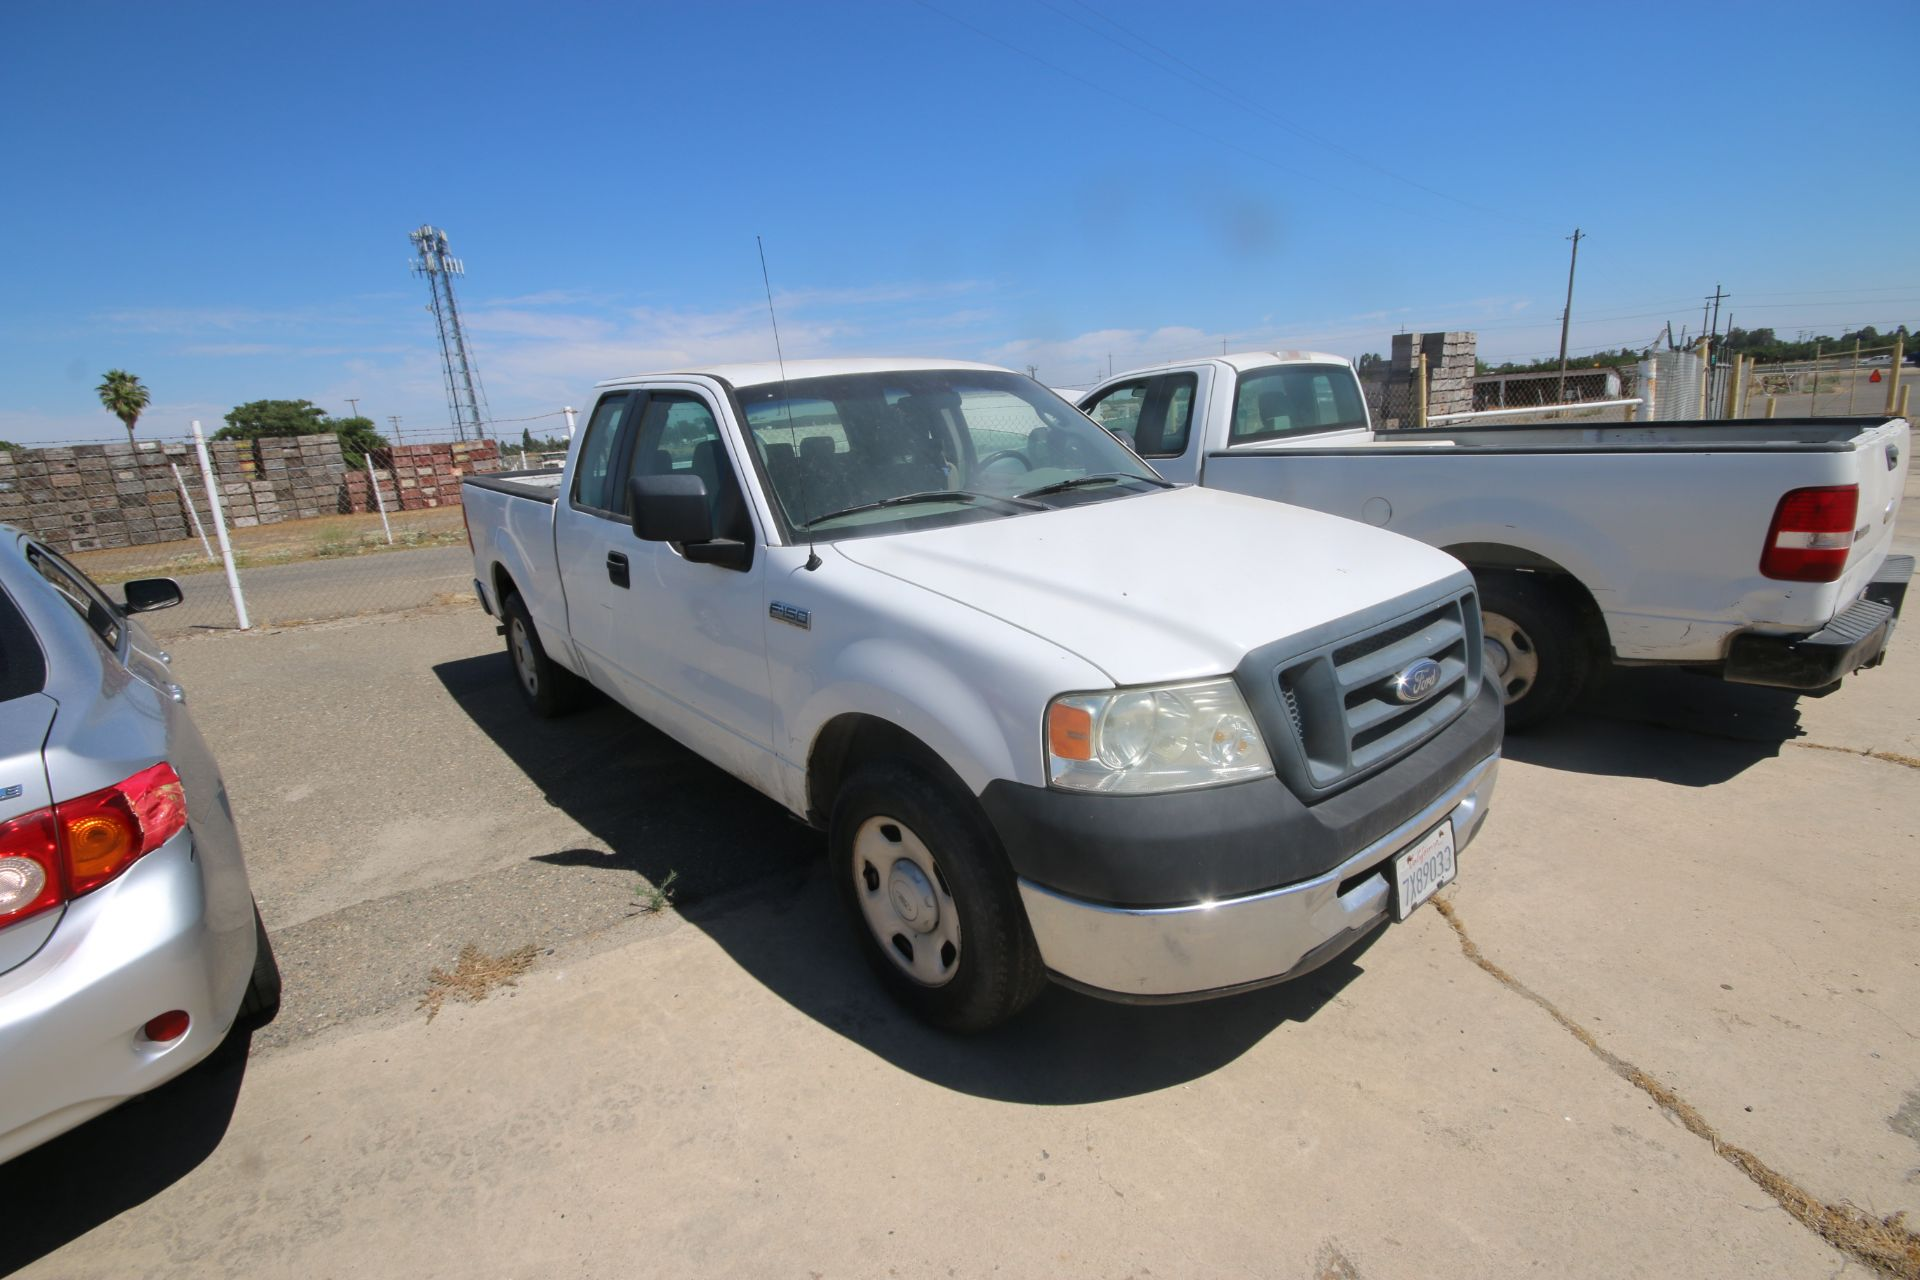 2006 Ford F150 S/C Pick Up Truck, VIN #: 1FTRX12W46FA38458, with 233,106 Miles, Started Up as of - Image 2 of 21